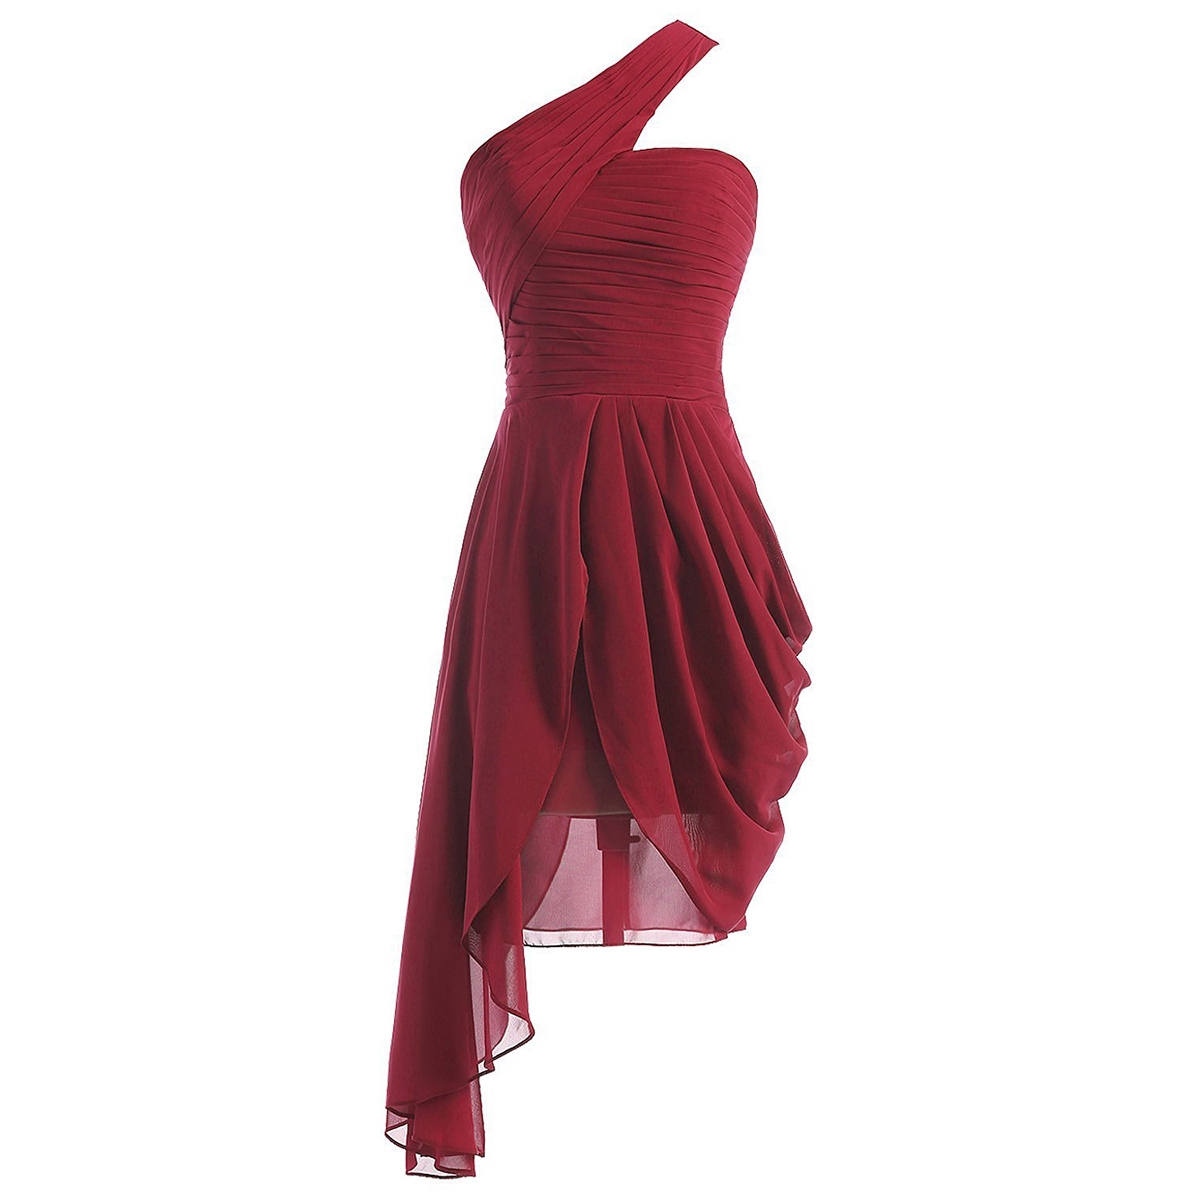 Burgundy Short Bridesmaid Dresses With Ruffles A Line One Shoulder New Gowns Asymmetrical Chiffon 01012950